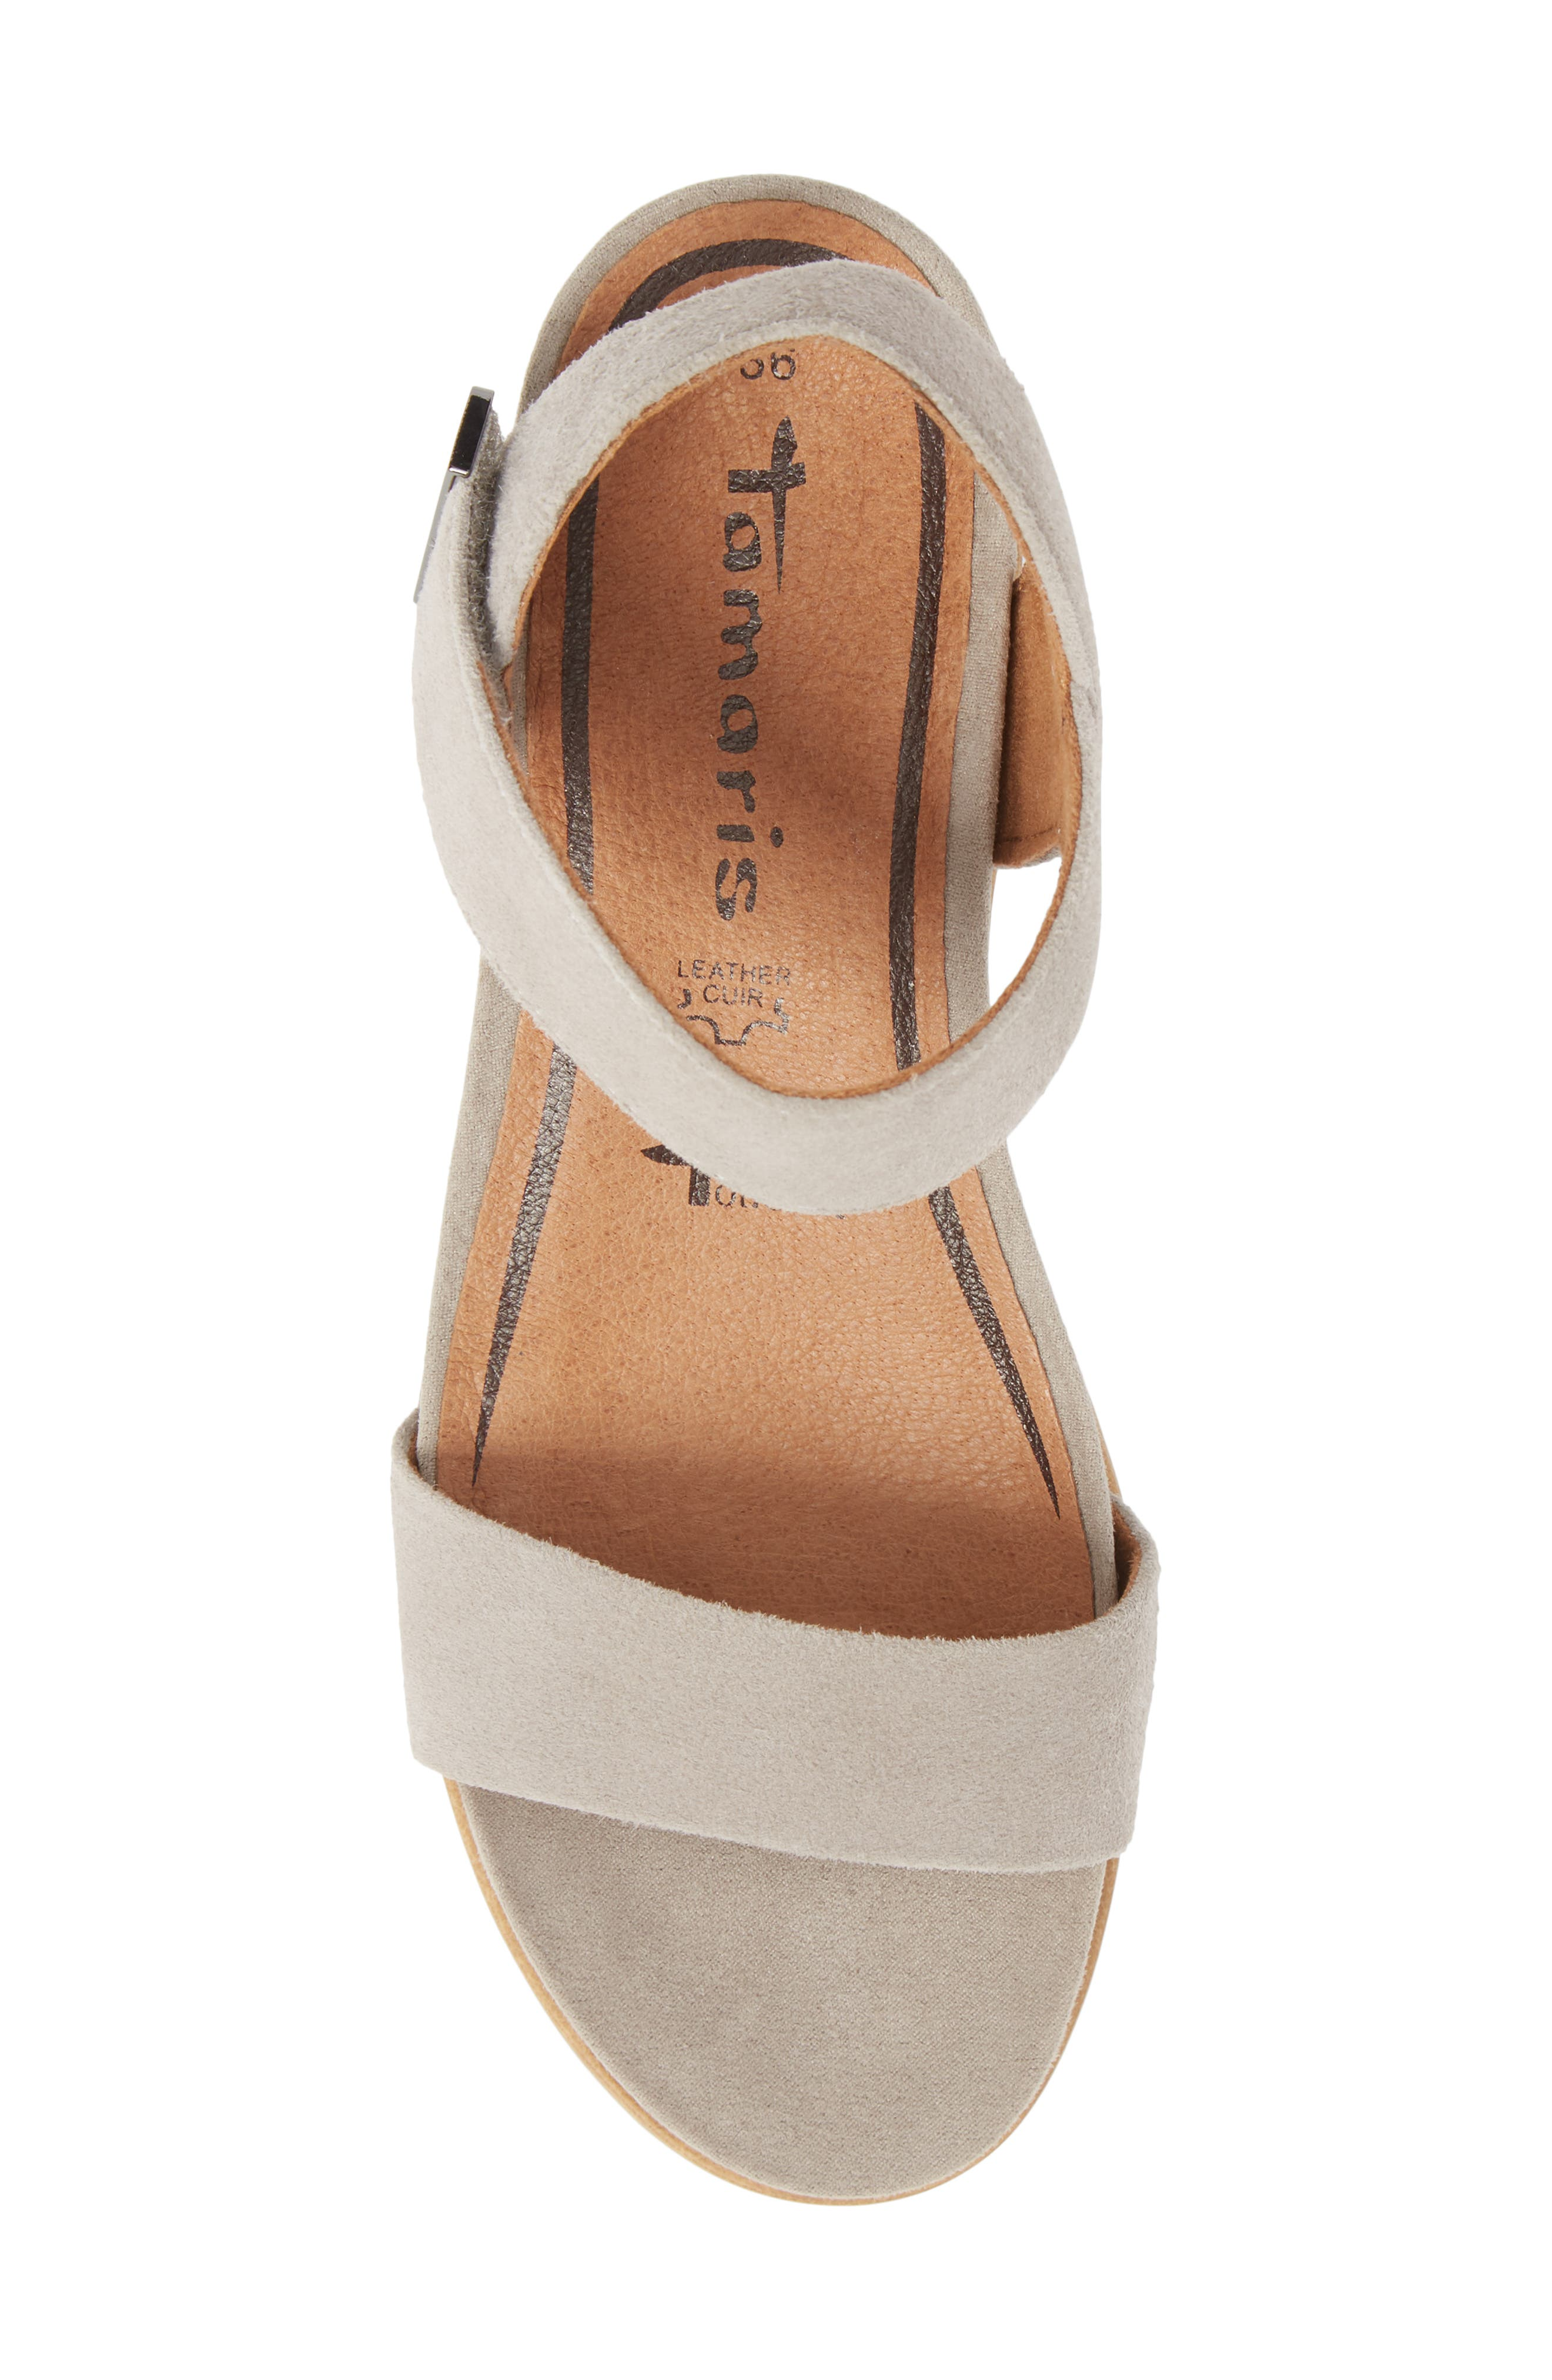 Cory Wedge Sandal,                             Alternate thumbnail 14, color,